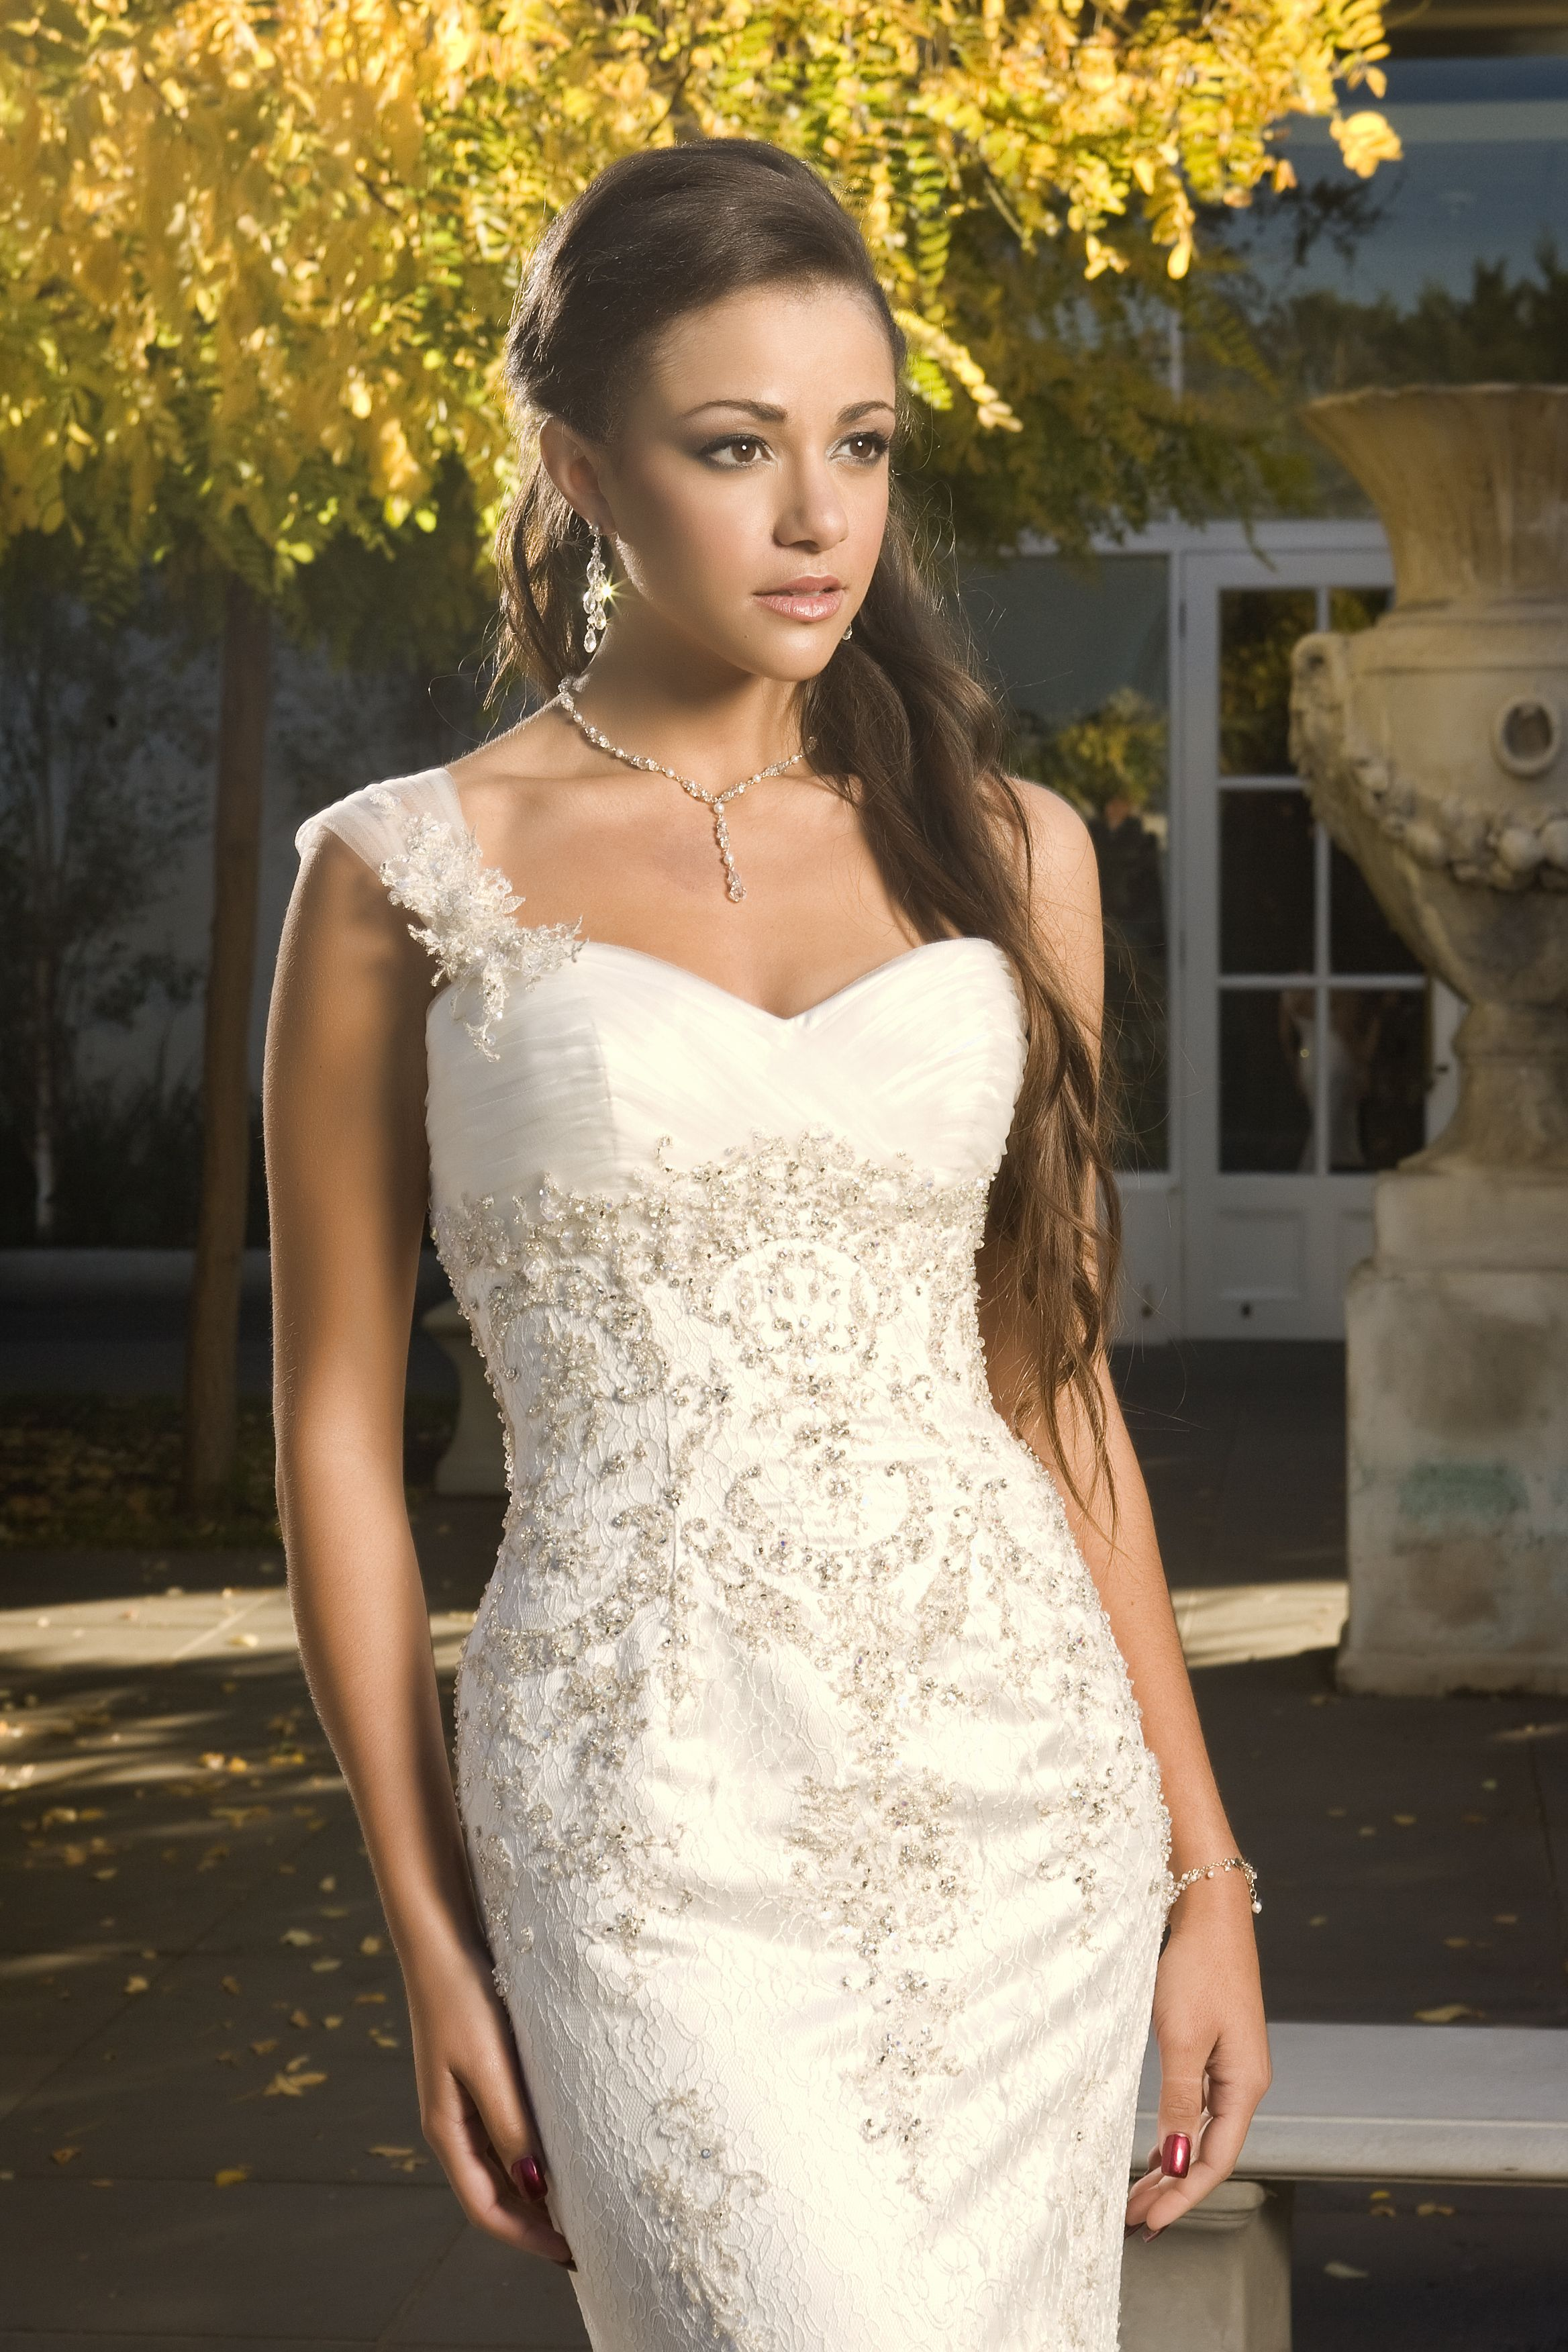 Lace dress wedding  Gorgeous lace dress with such pretty intricate detail So elegant